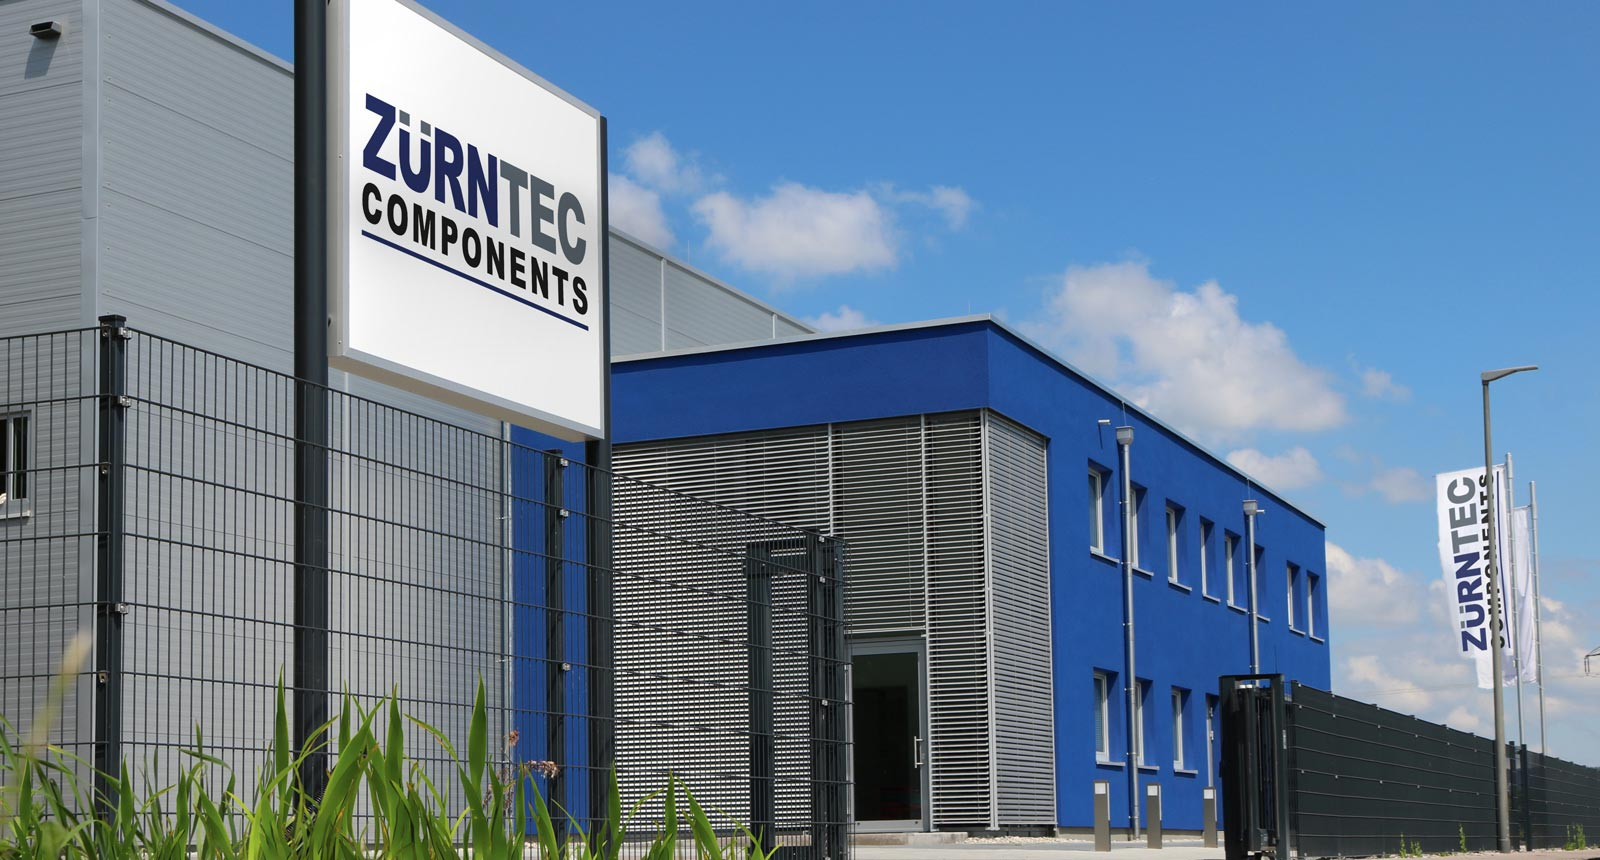 ZürnTEC Fertigungszentrum Rain, Manufacturing Center Rain